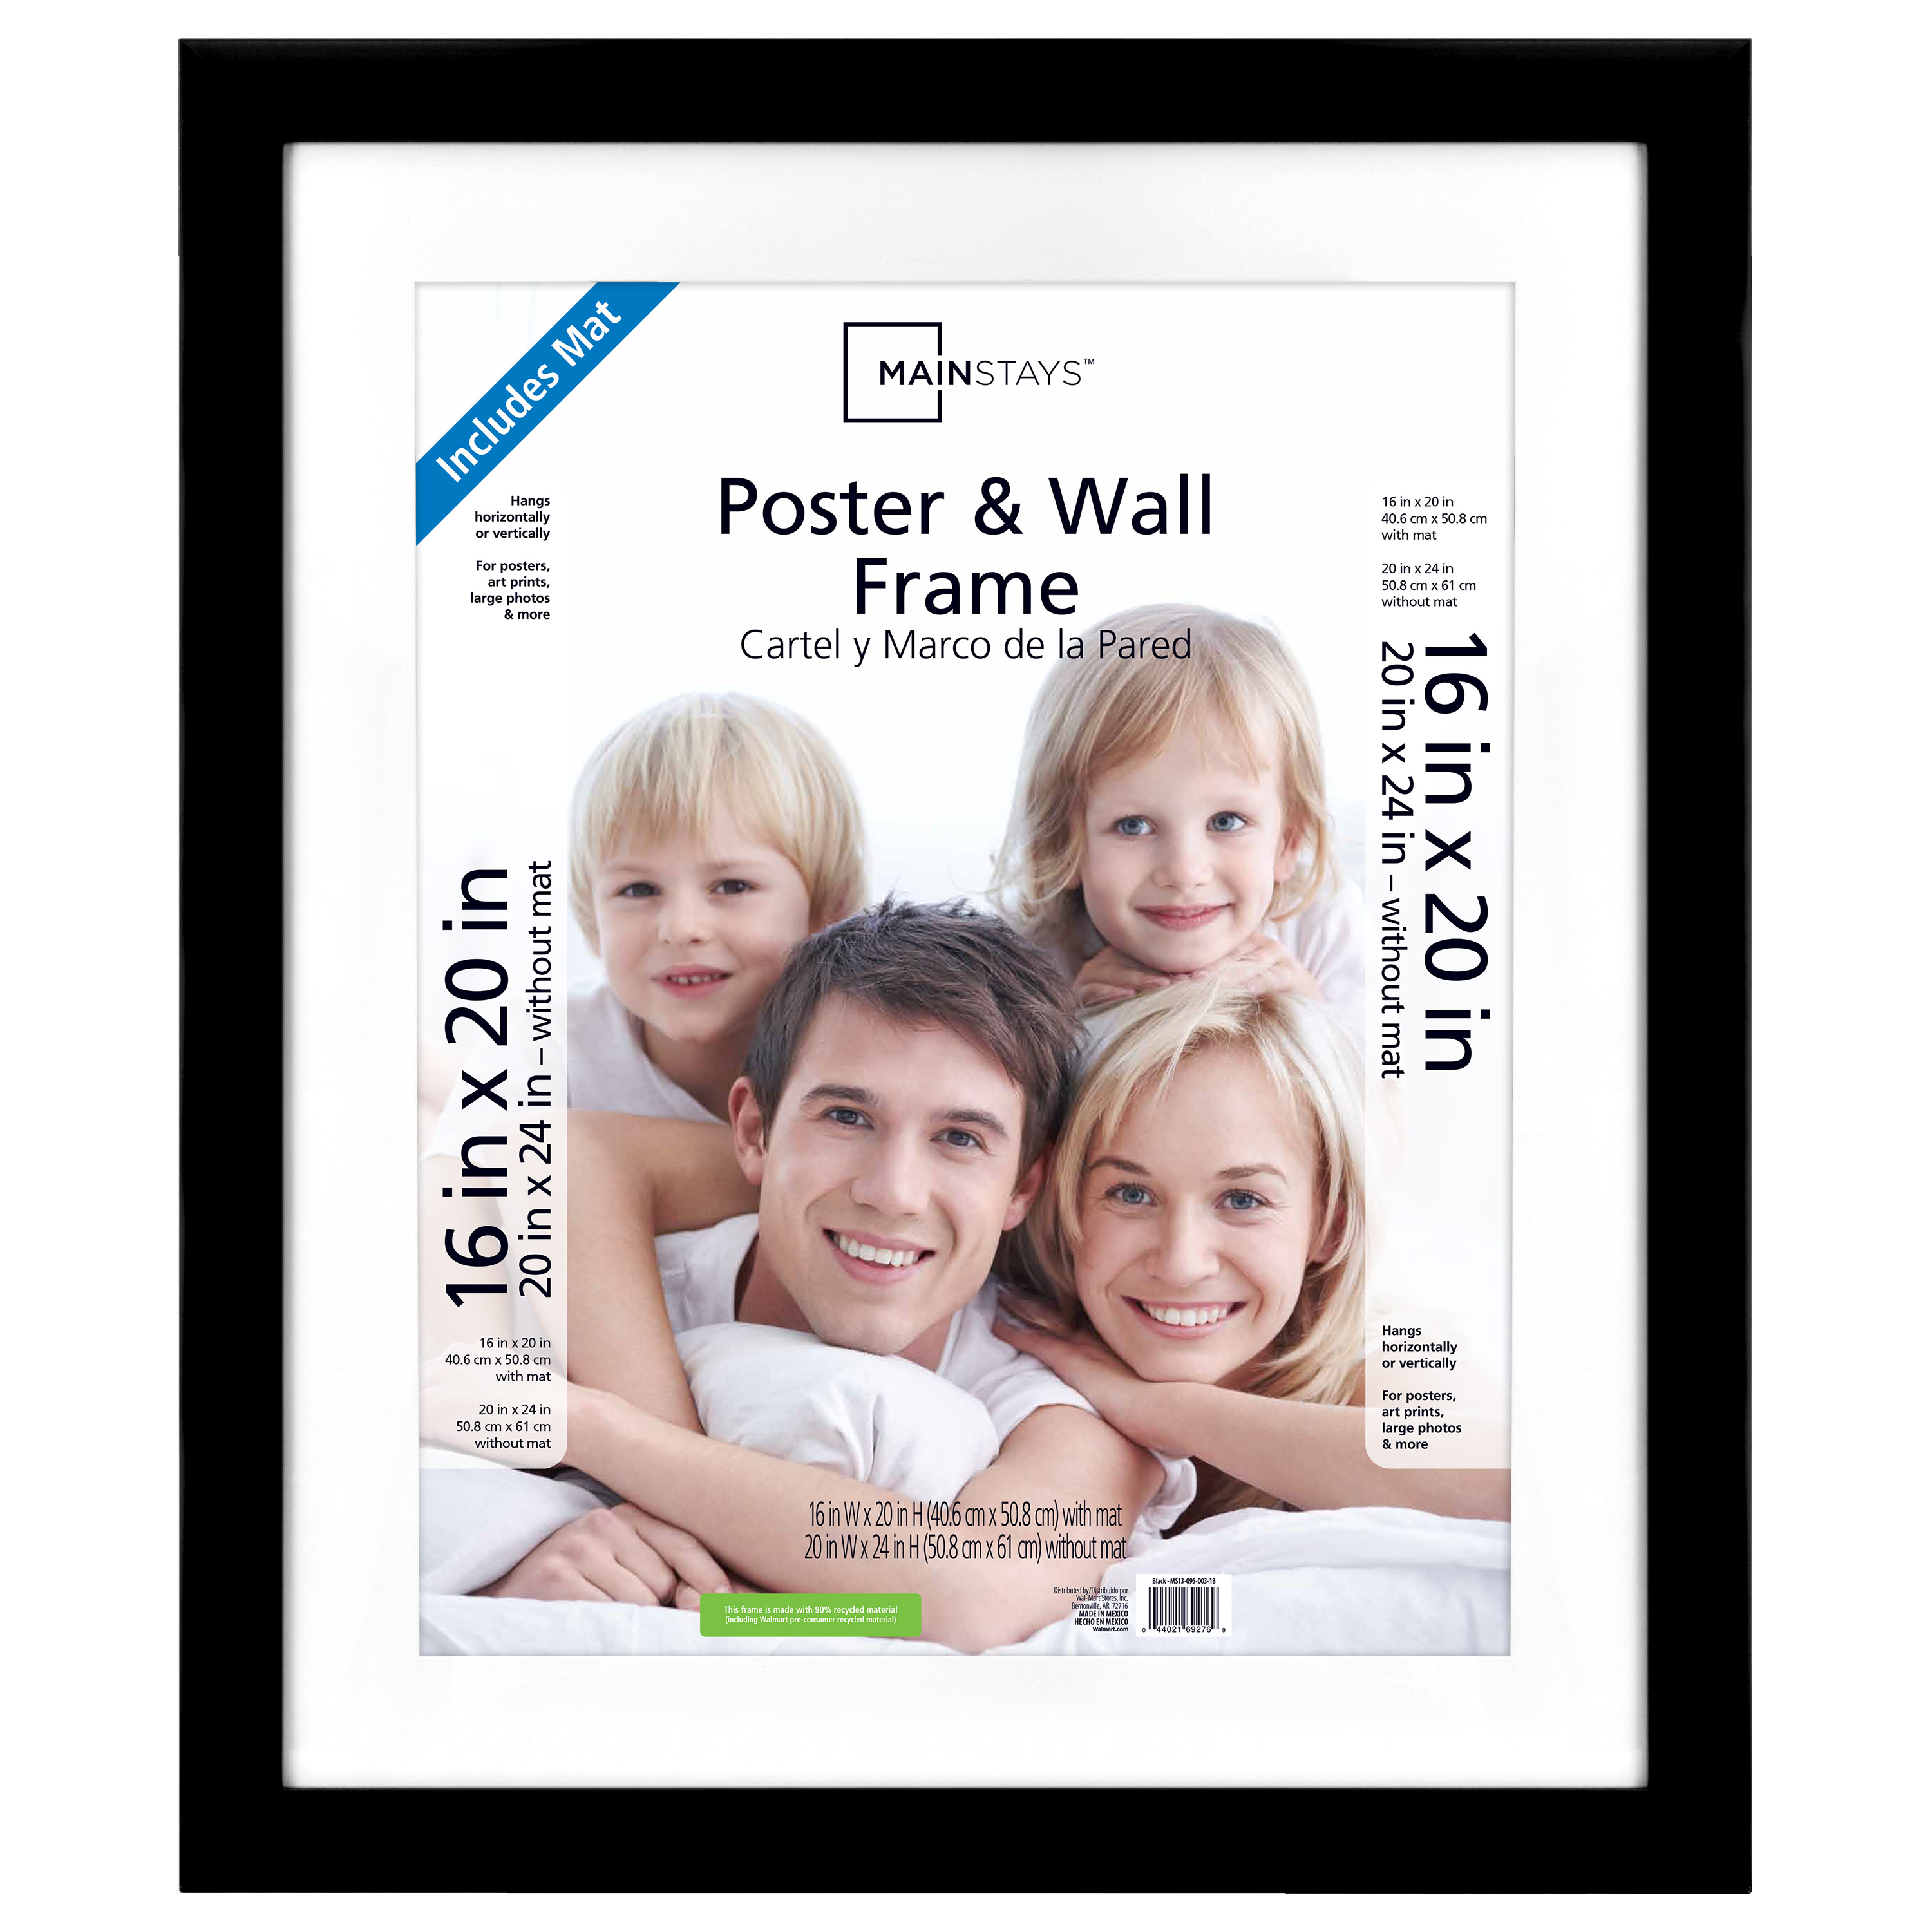 Mainstays 20 X 24 Matted To 16 X 20 Wide Black Poster And